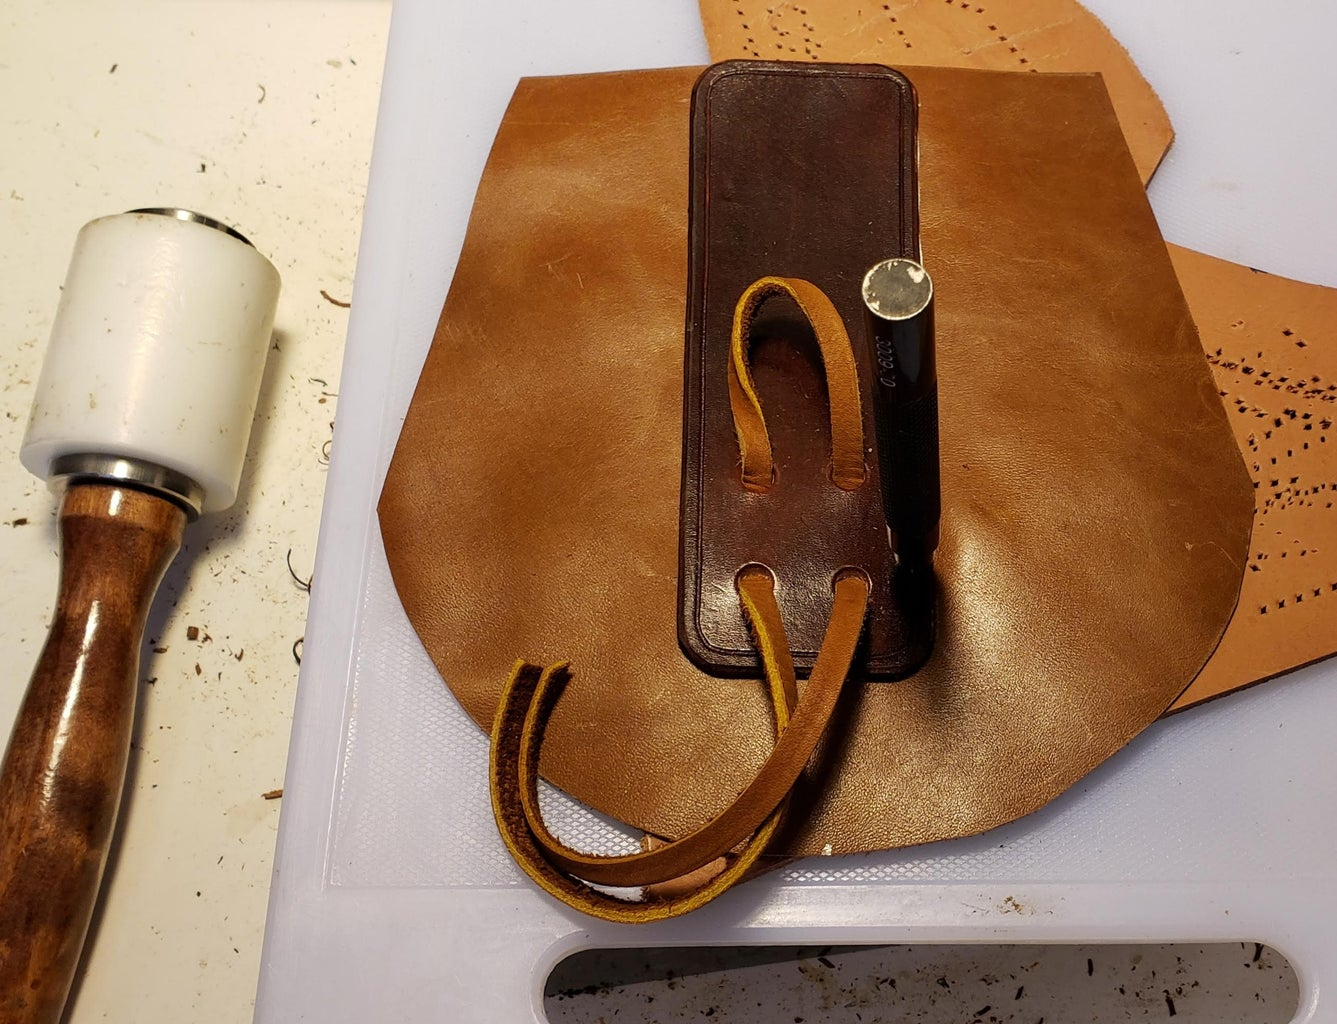 Attaching the Front Piece to the Bag